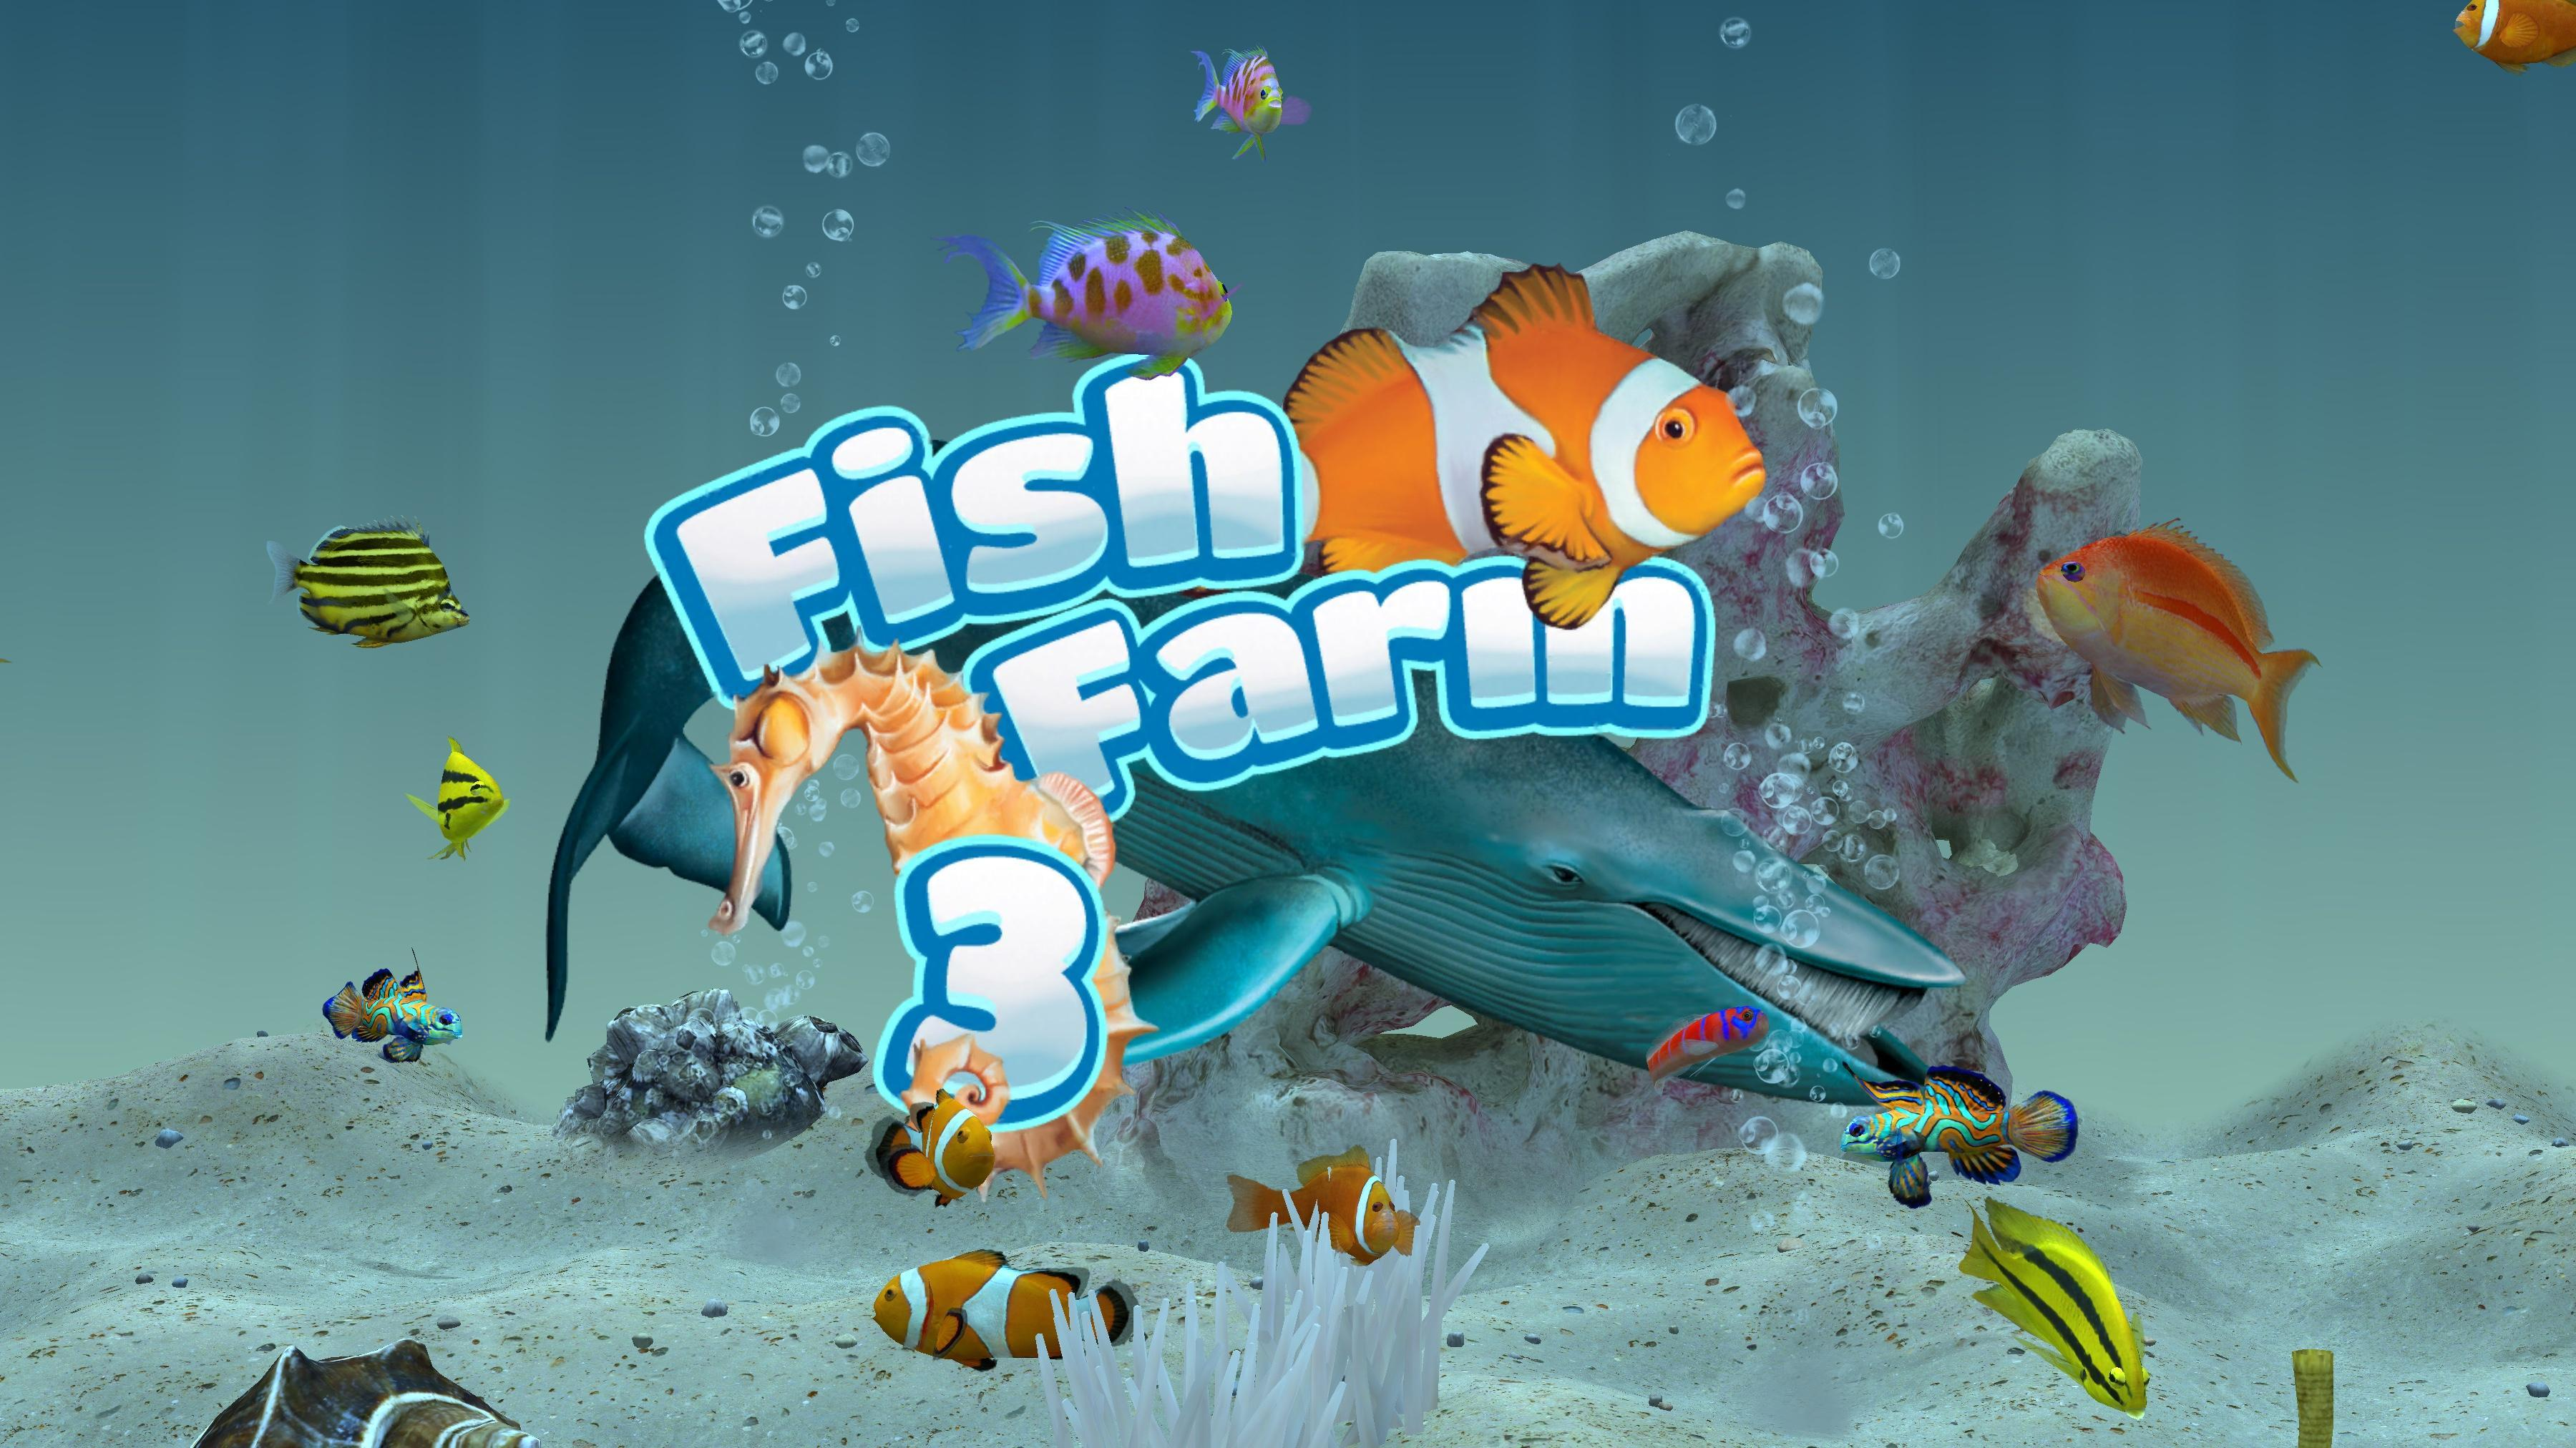 Fish Farm 3 for Android - APK Download